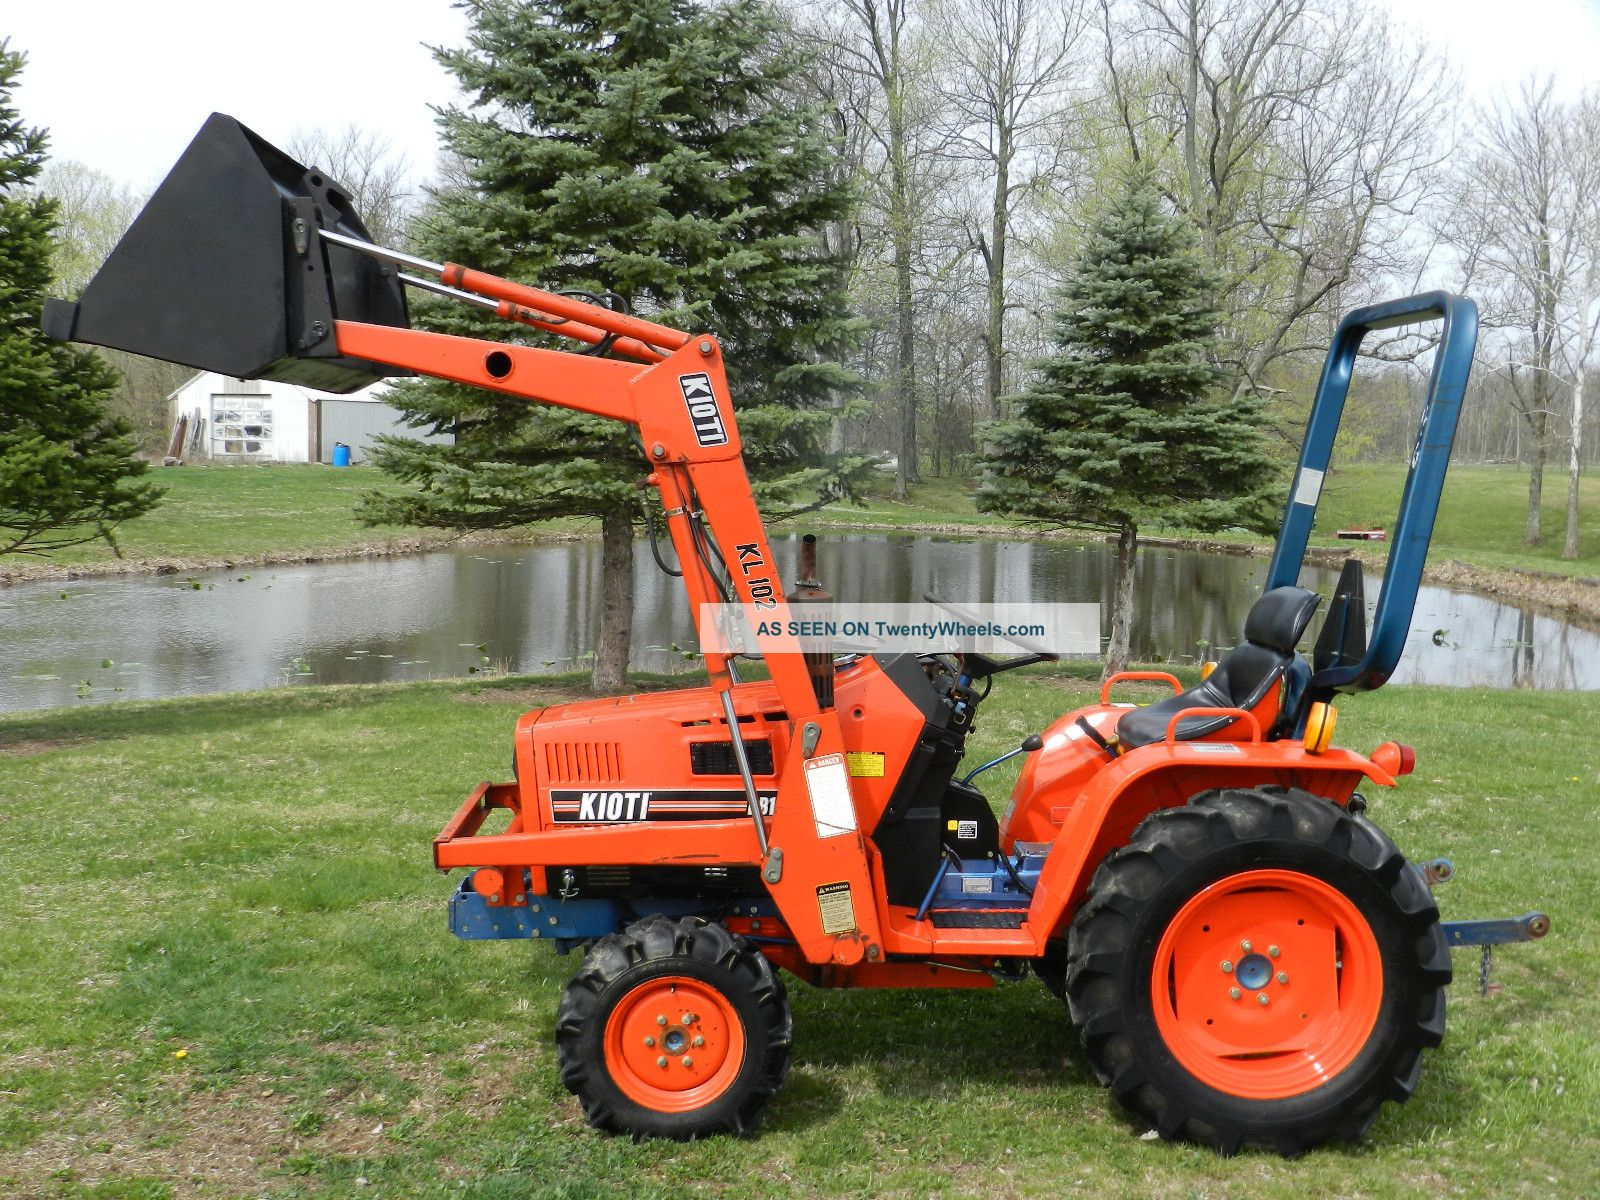 Small Tractors With Loaders : Kioti b compact tractor front hydraulic loader